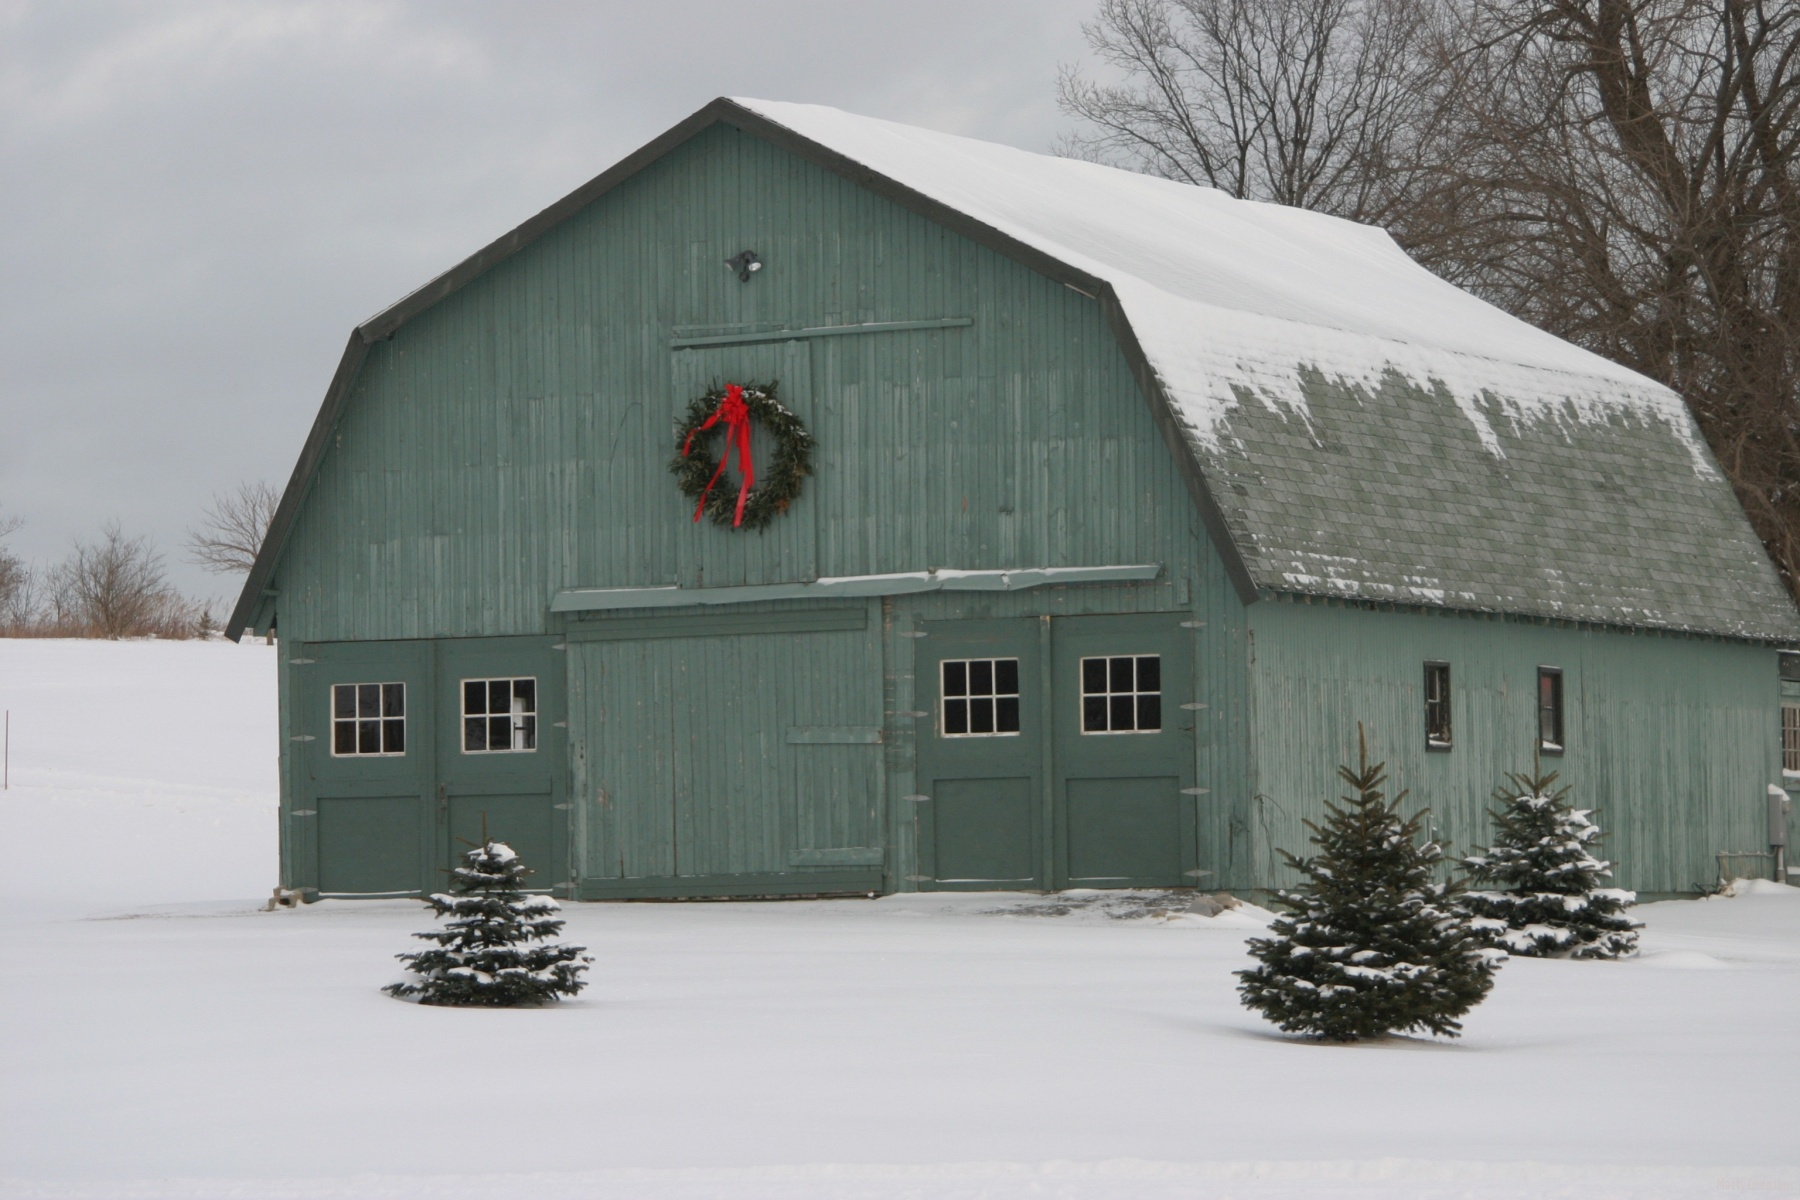 Snowy Green barn